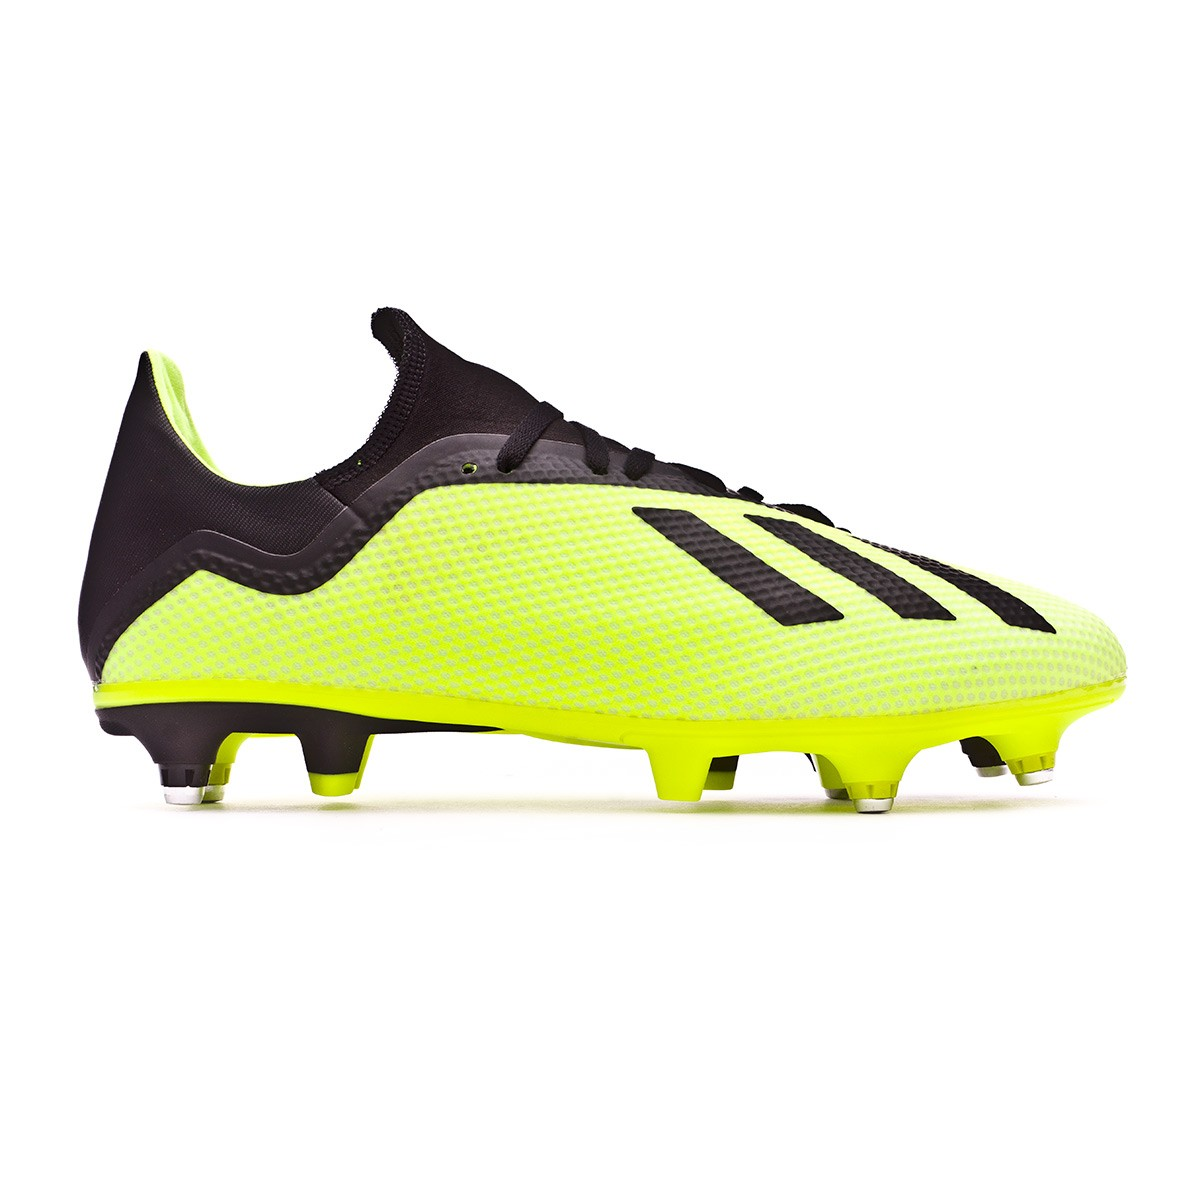 9703c62c7 Football Boots adidas X 18.3 SG Solar yellow-Core black-White - Tienda de  fútbol Fútbol Emotion